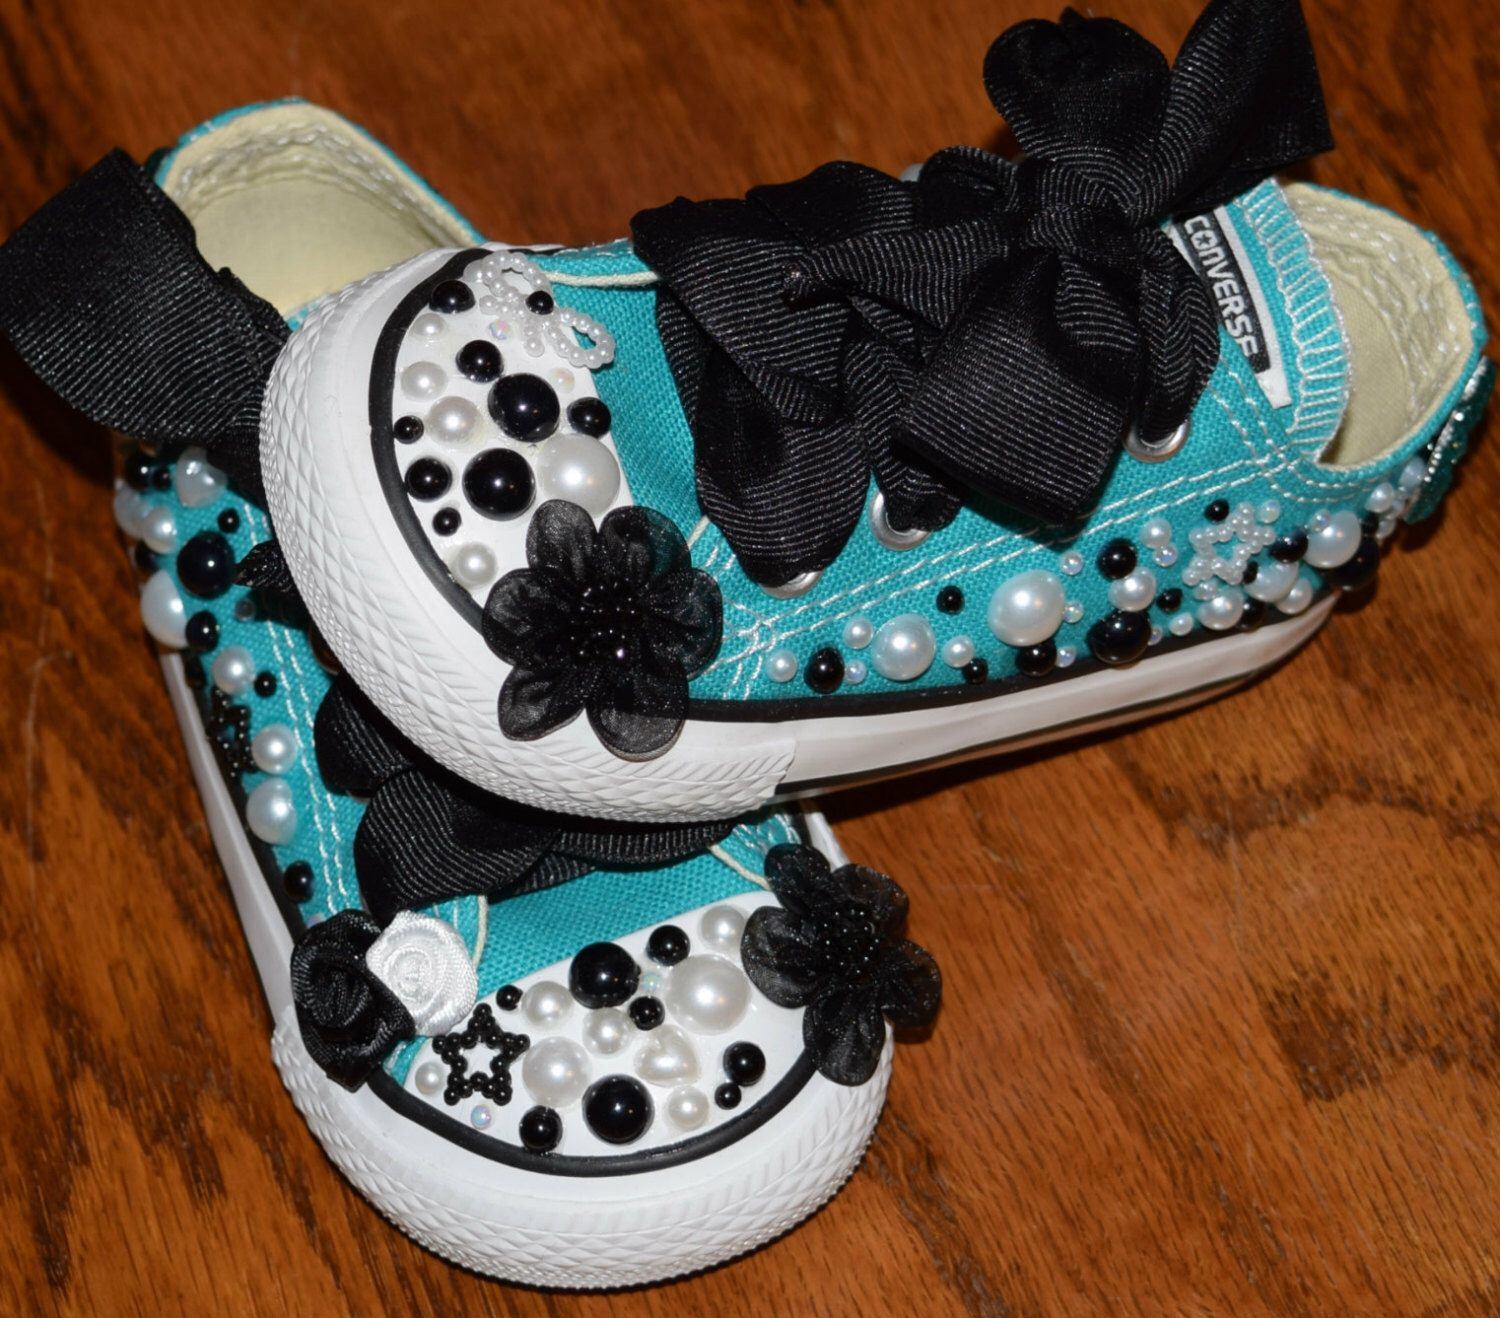 Teal, Black & White Bling Pearl Converse Shoes - Baby / Toddler size 5 -